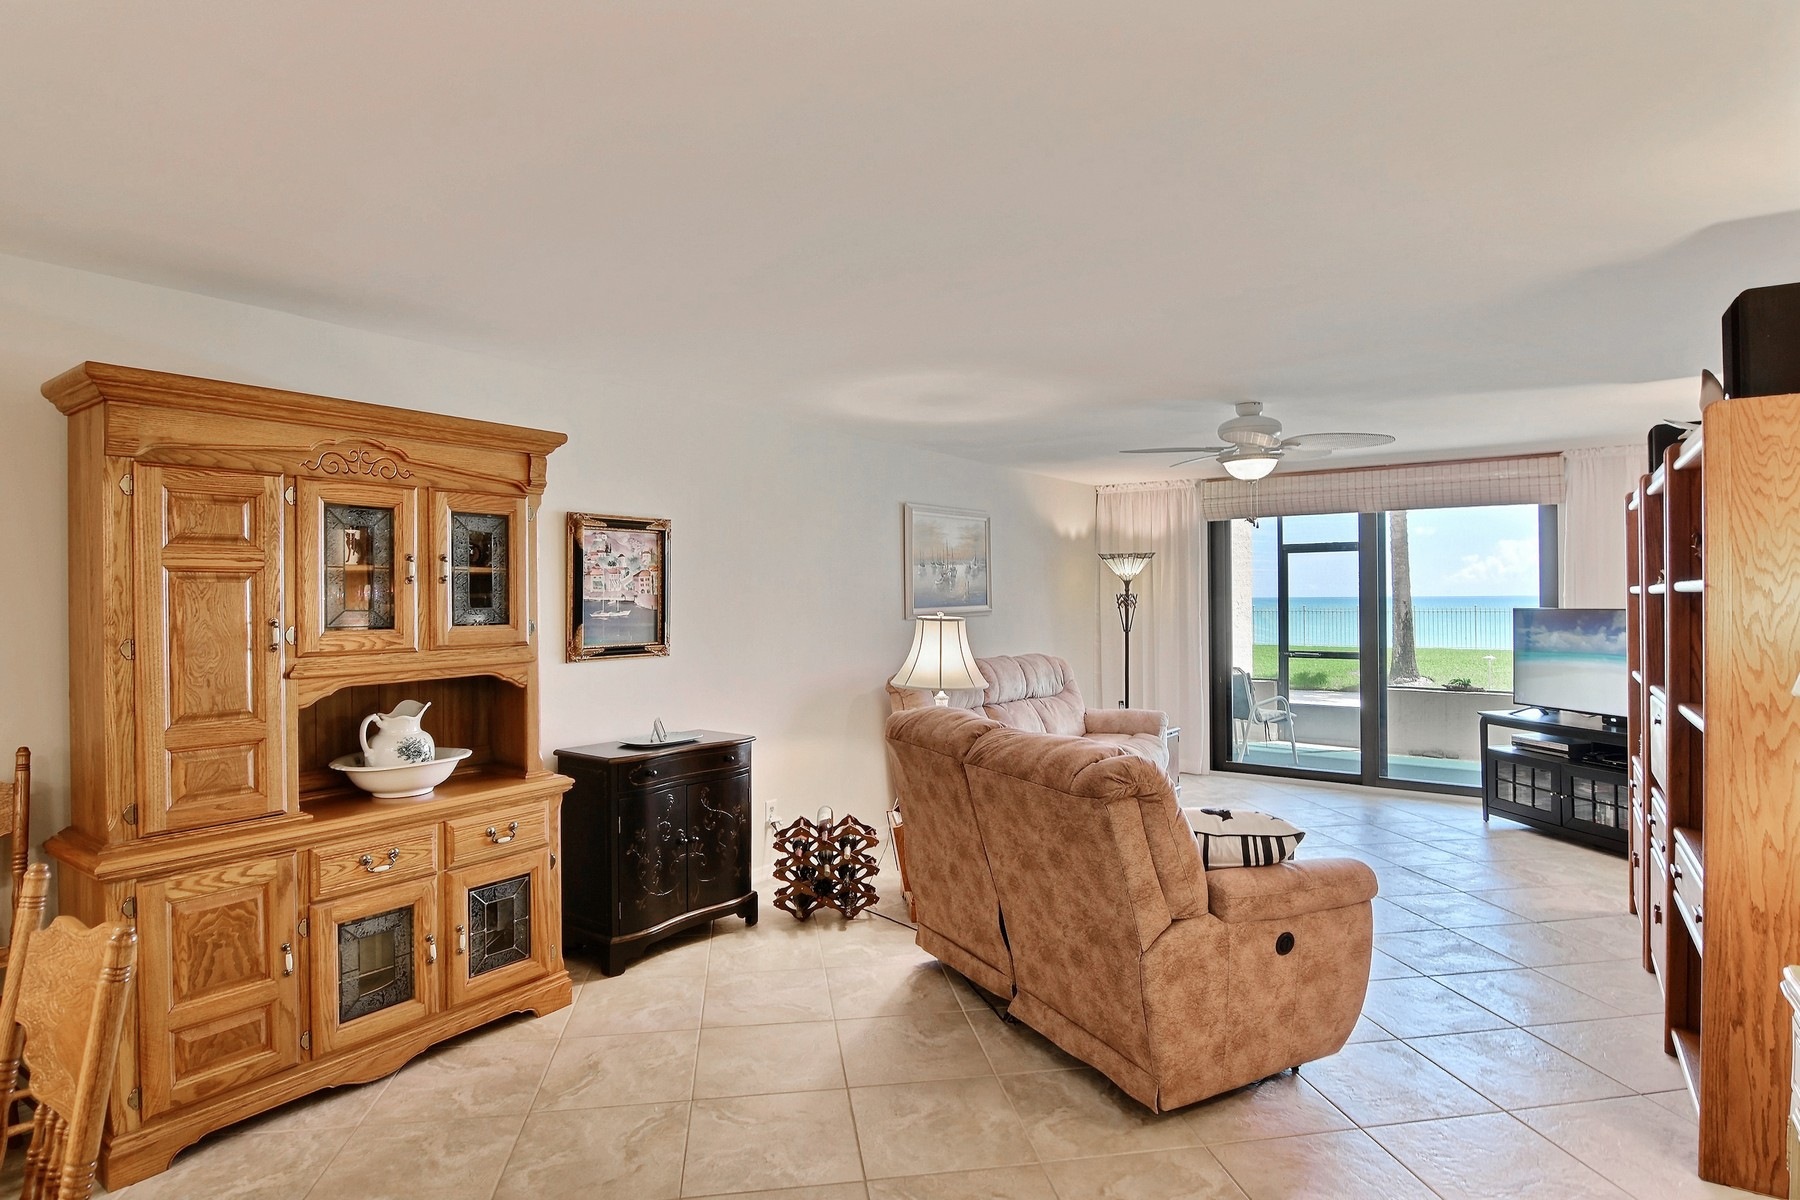 Property for Sale at Direct Oceanfront Opulent Pet Friendly Three Bedroom with Garage 4800 Highway A1A #116 Vero Beach, Florida 32963 United States